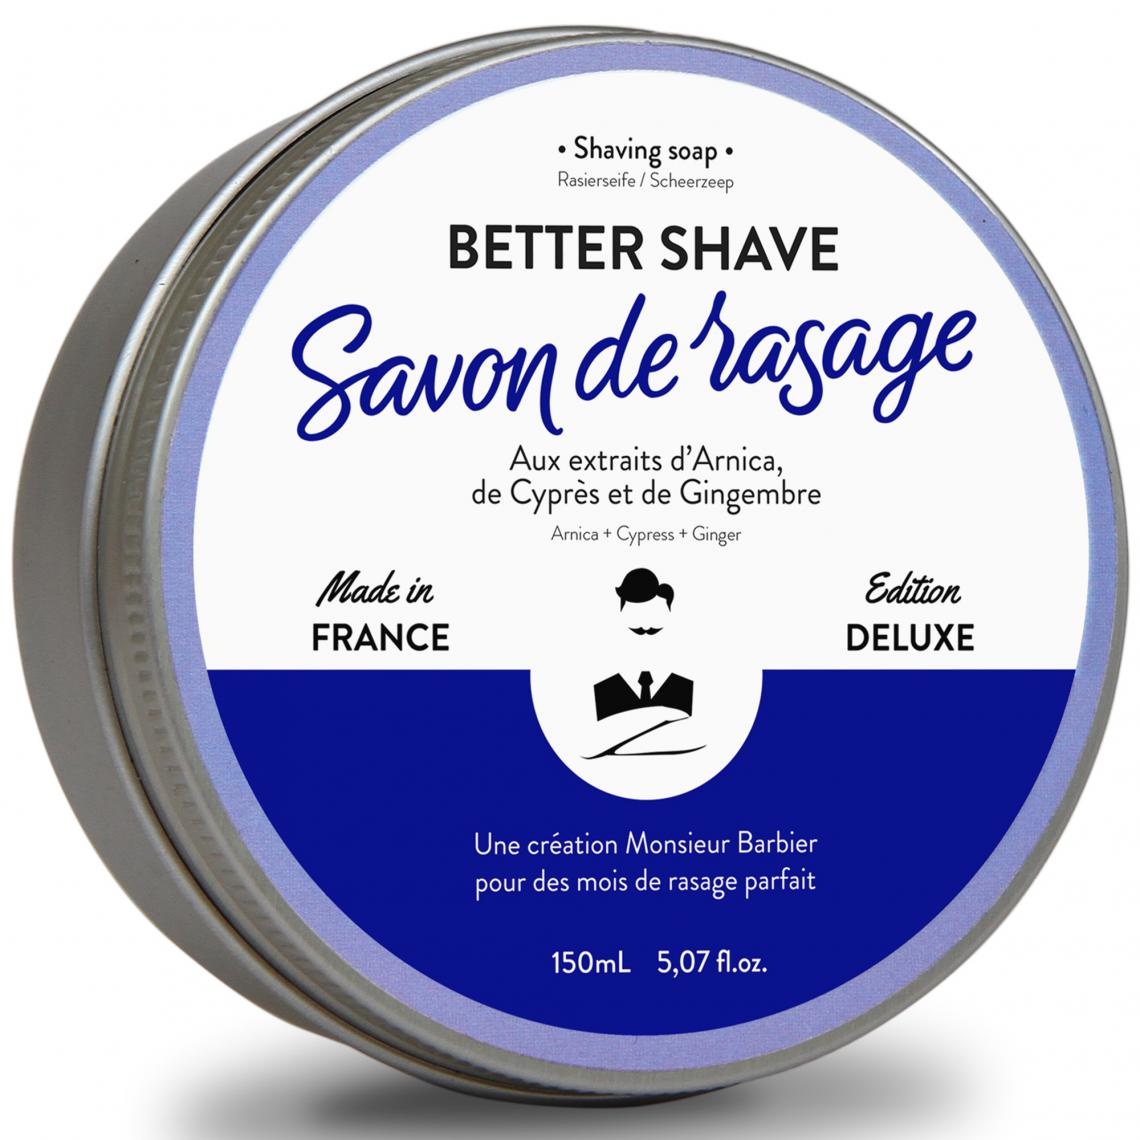 Savon de rasage traditionnel Better-Shave (arnica, cyprès, gingembre) Monsieur Barbier